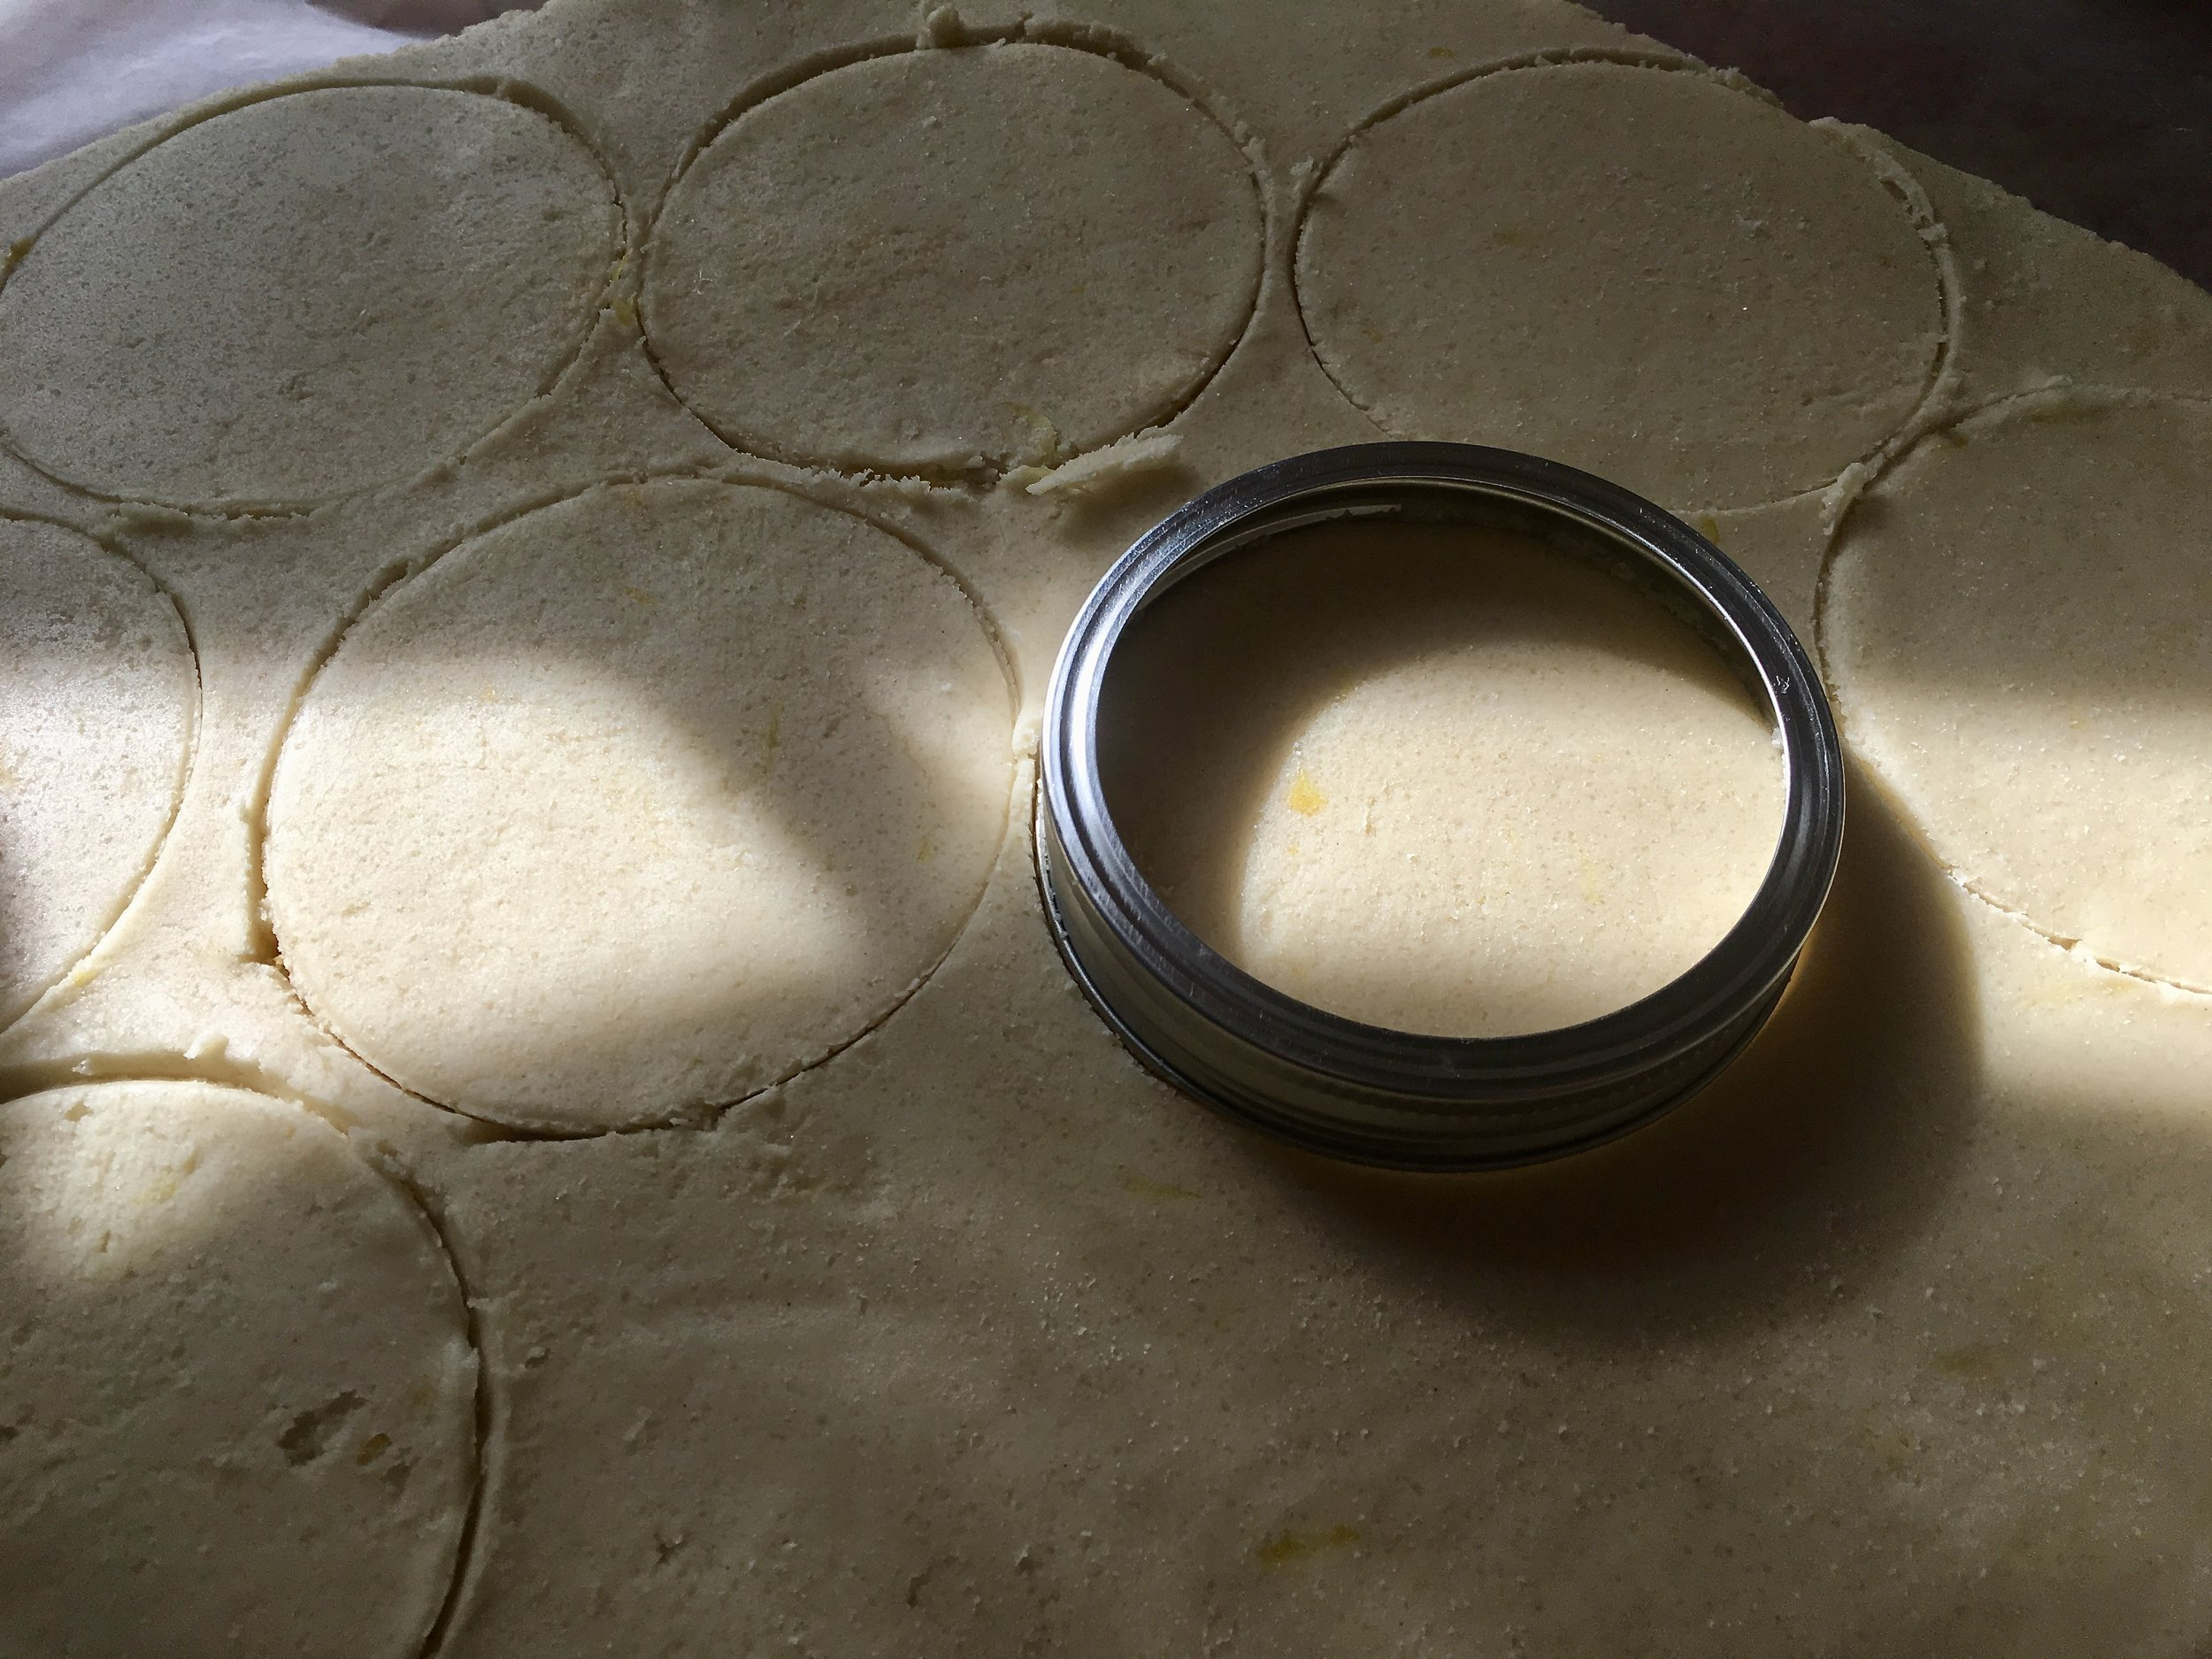 SWYF Pro-Tip: wide-mouth mason jar lid makes the perfect cookie cutter!